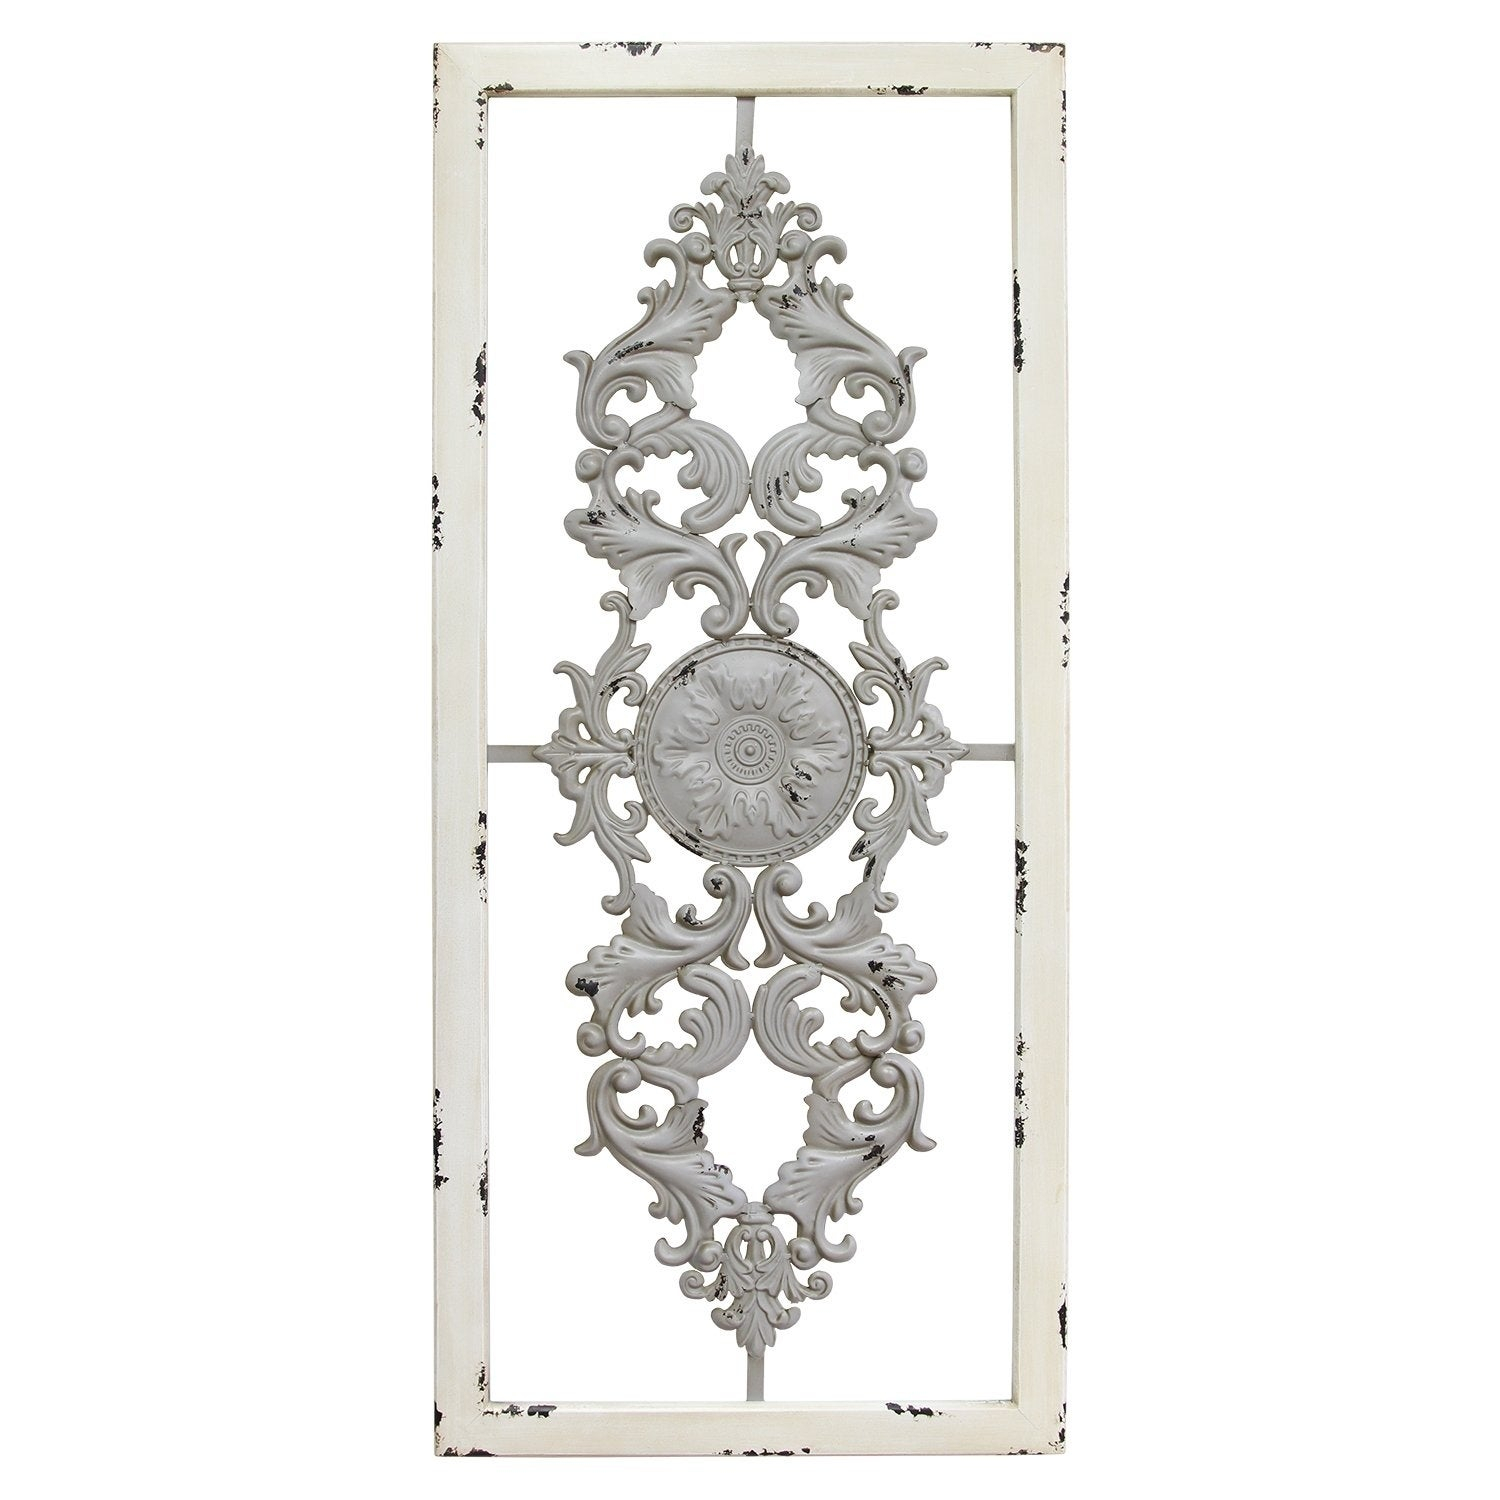 Well Known Ornate Scroll Wall Decor Inside Ornate Scroll Panel Grey Wall Decor White Frame 36X16 Metal Wood (View 19 of 20)